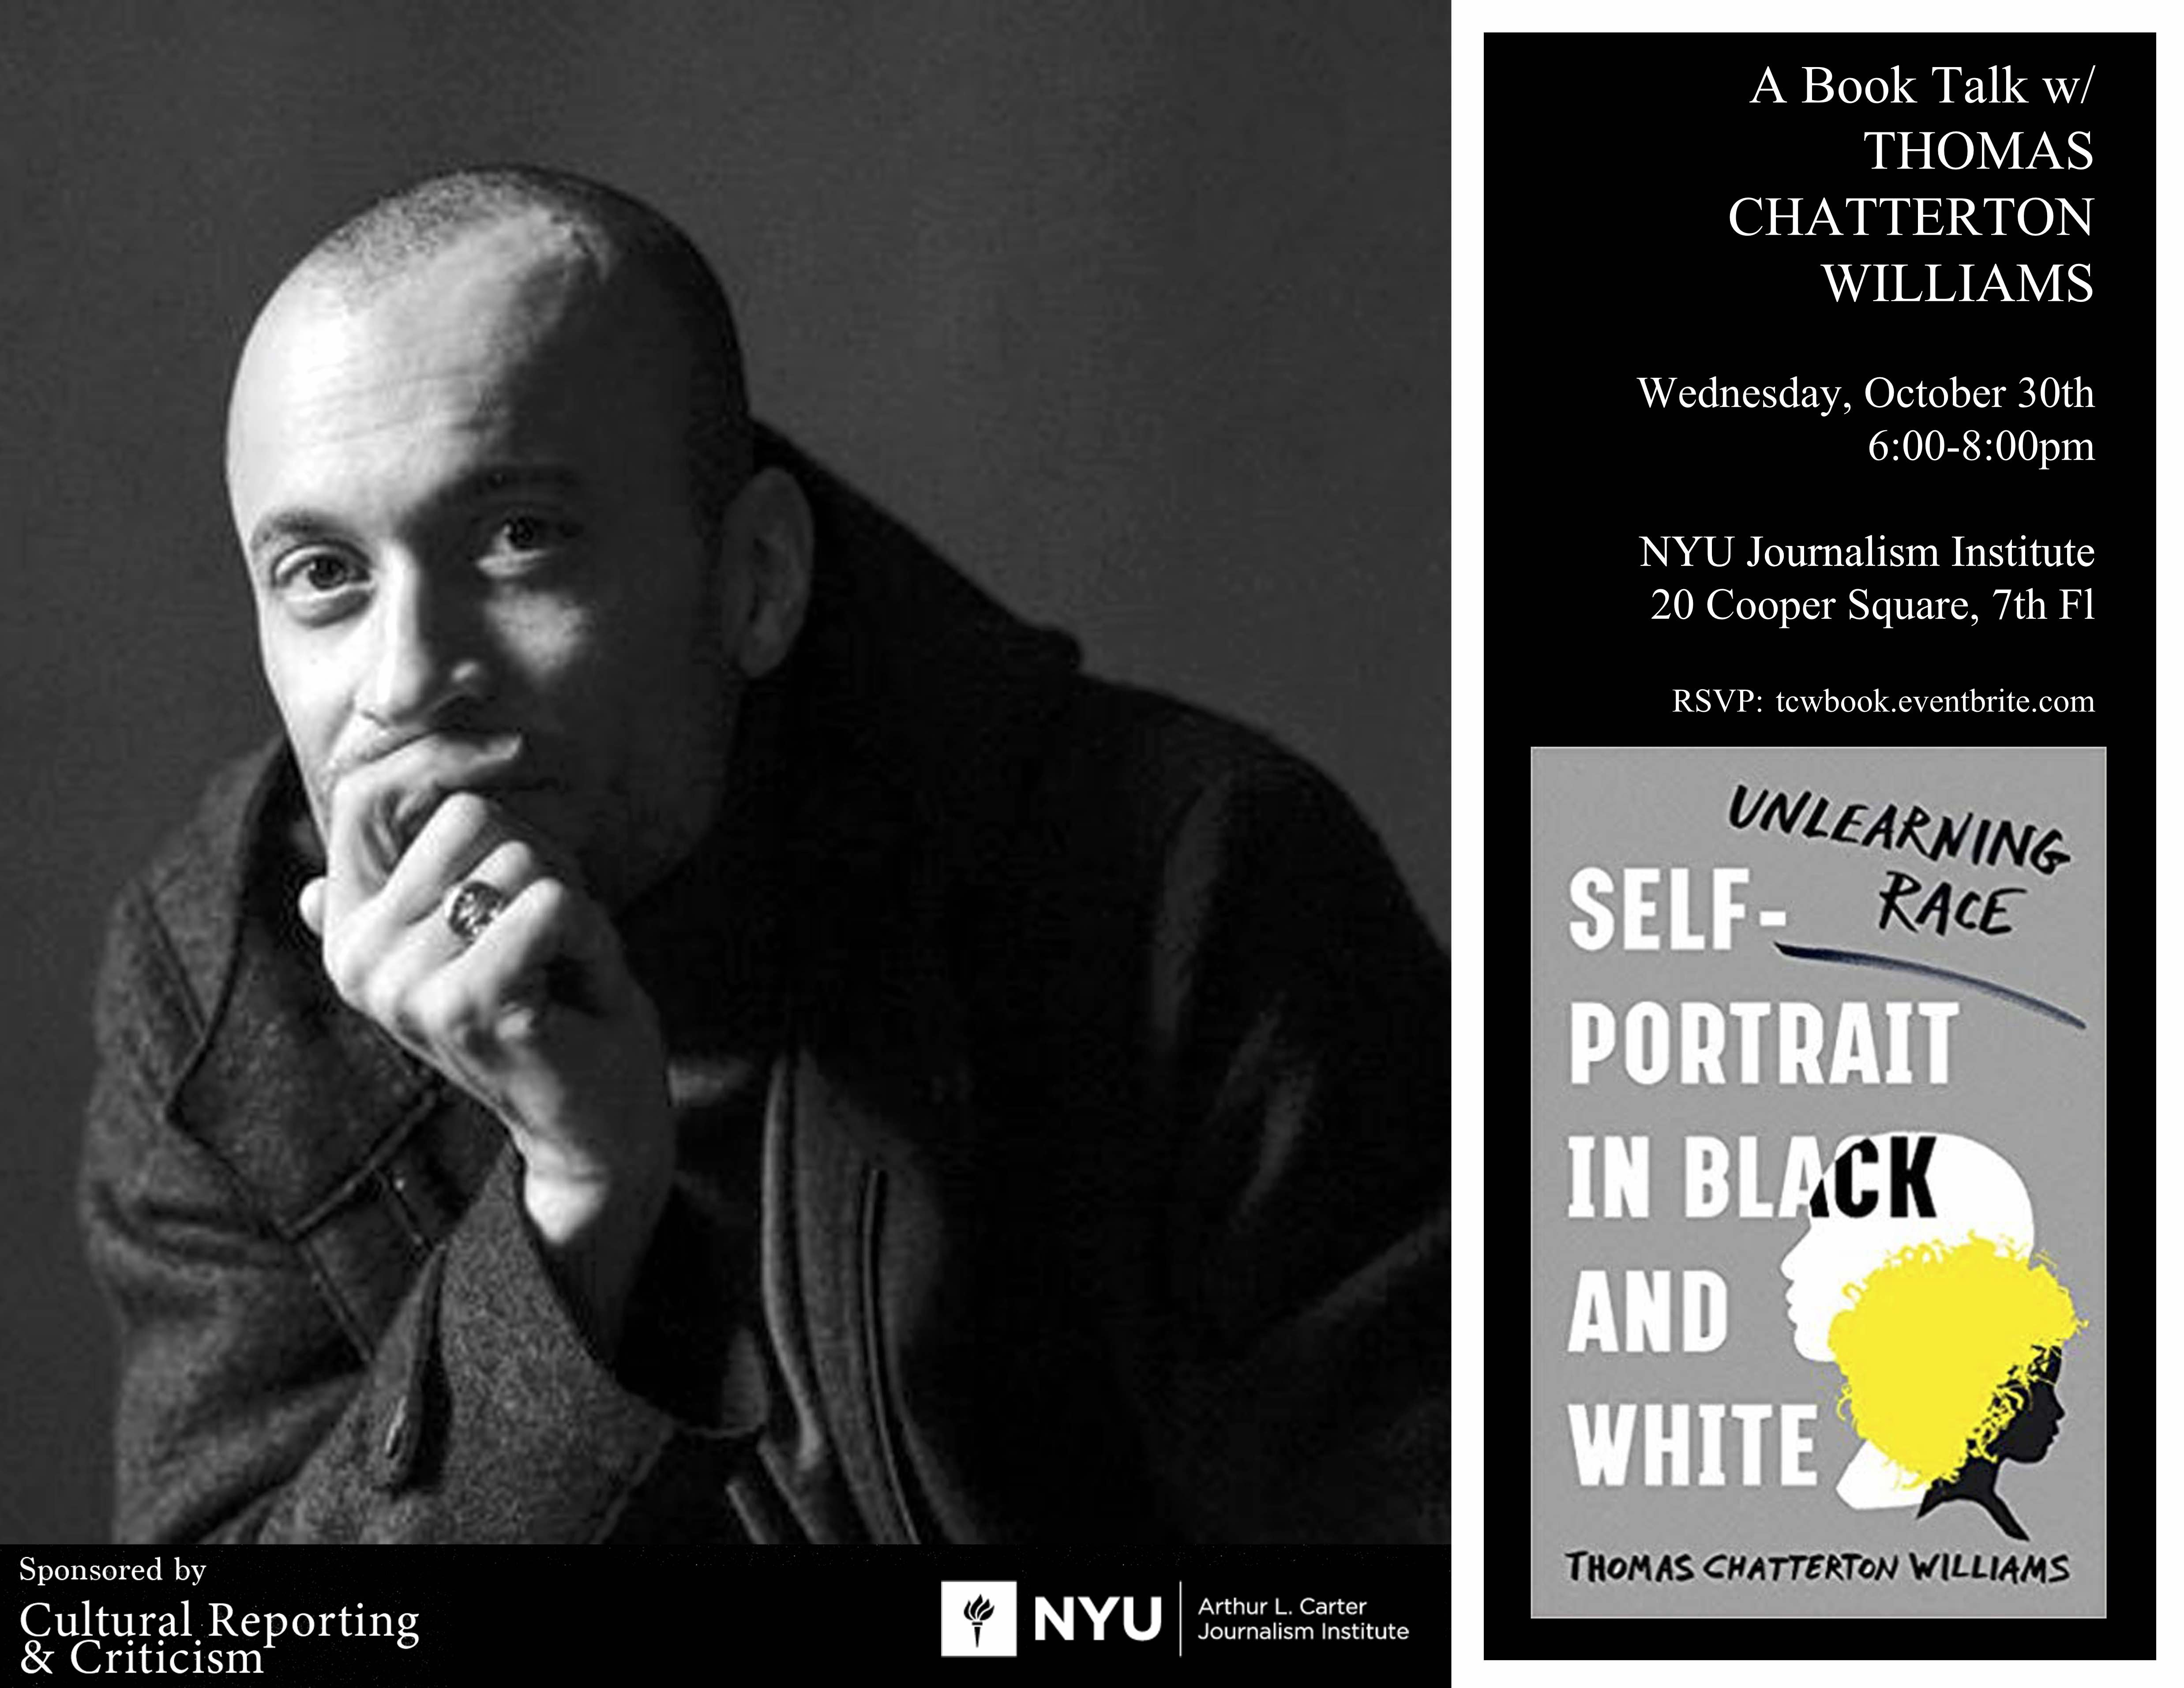 Book Talk With Thomas Chatterton Williams